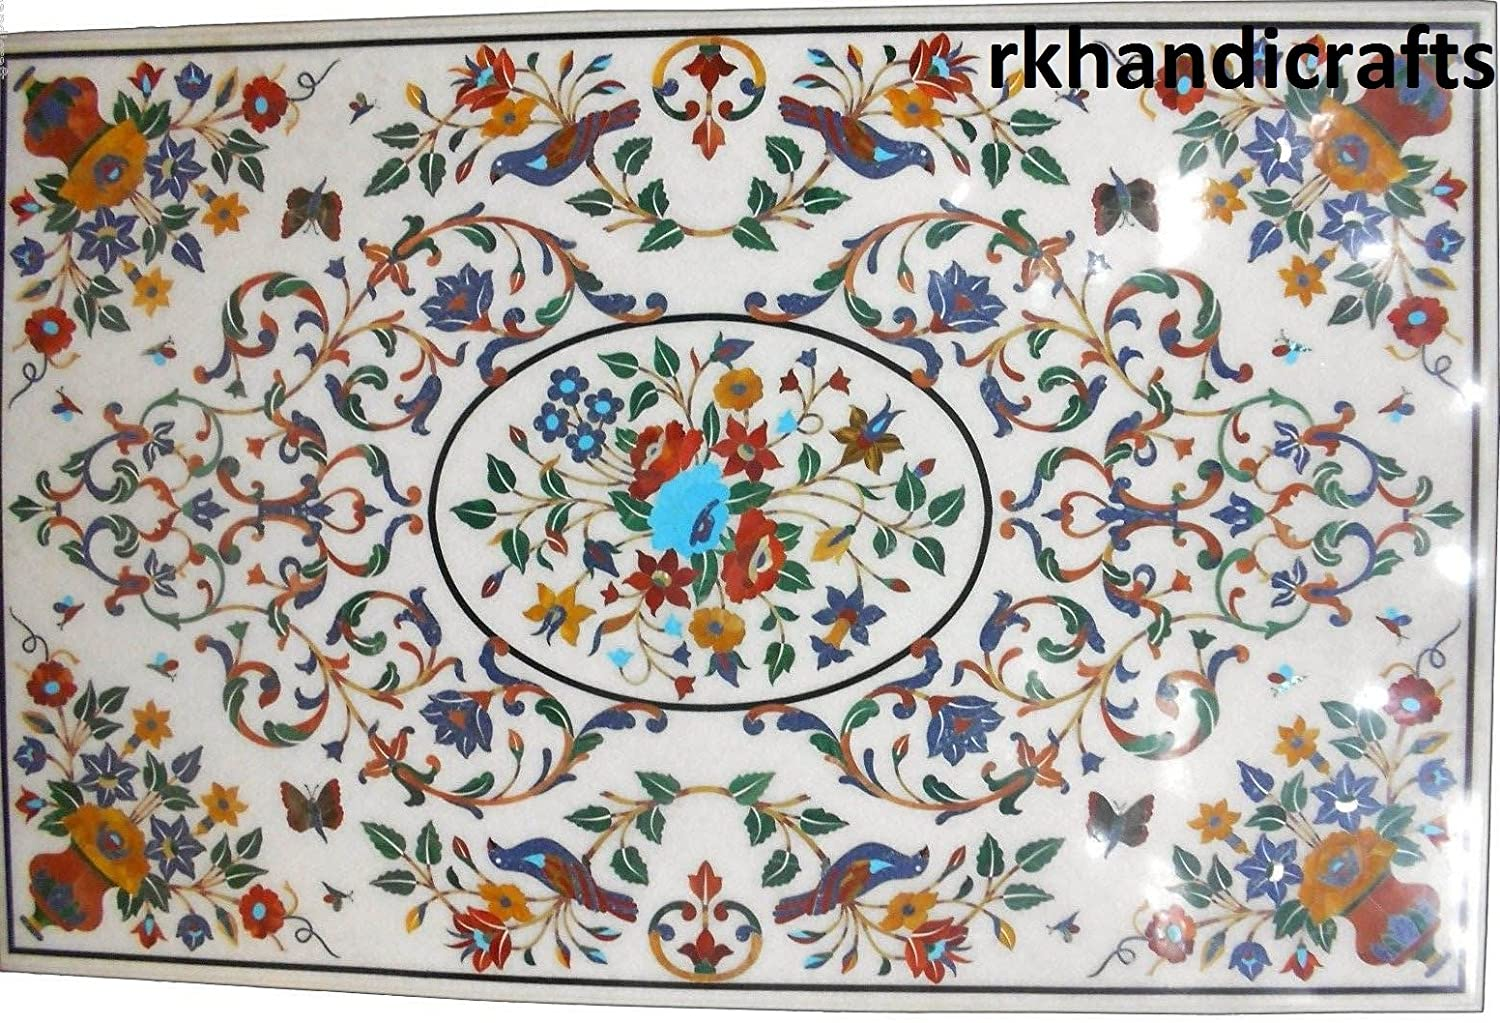 White Marble Patio Dining Table Top, Patio Coffee Table Inlay Work with Multi Colors Semi Precious Stones Floral Art, Size 30 inches x 60 Inches